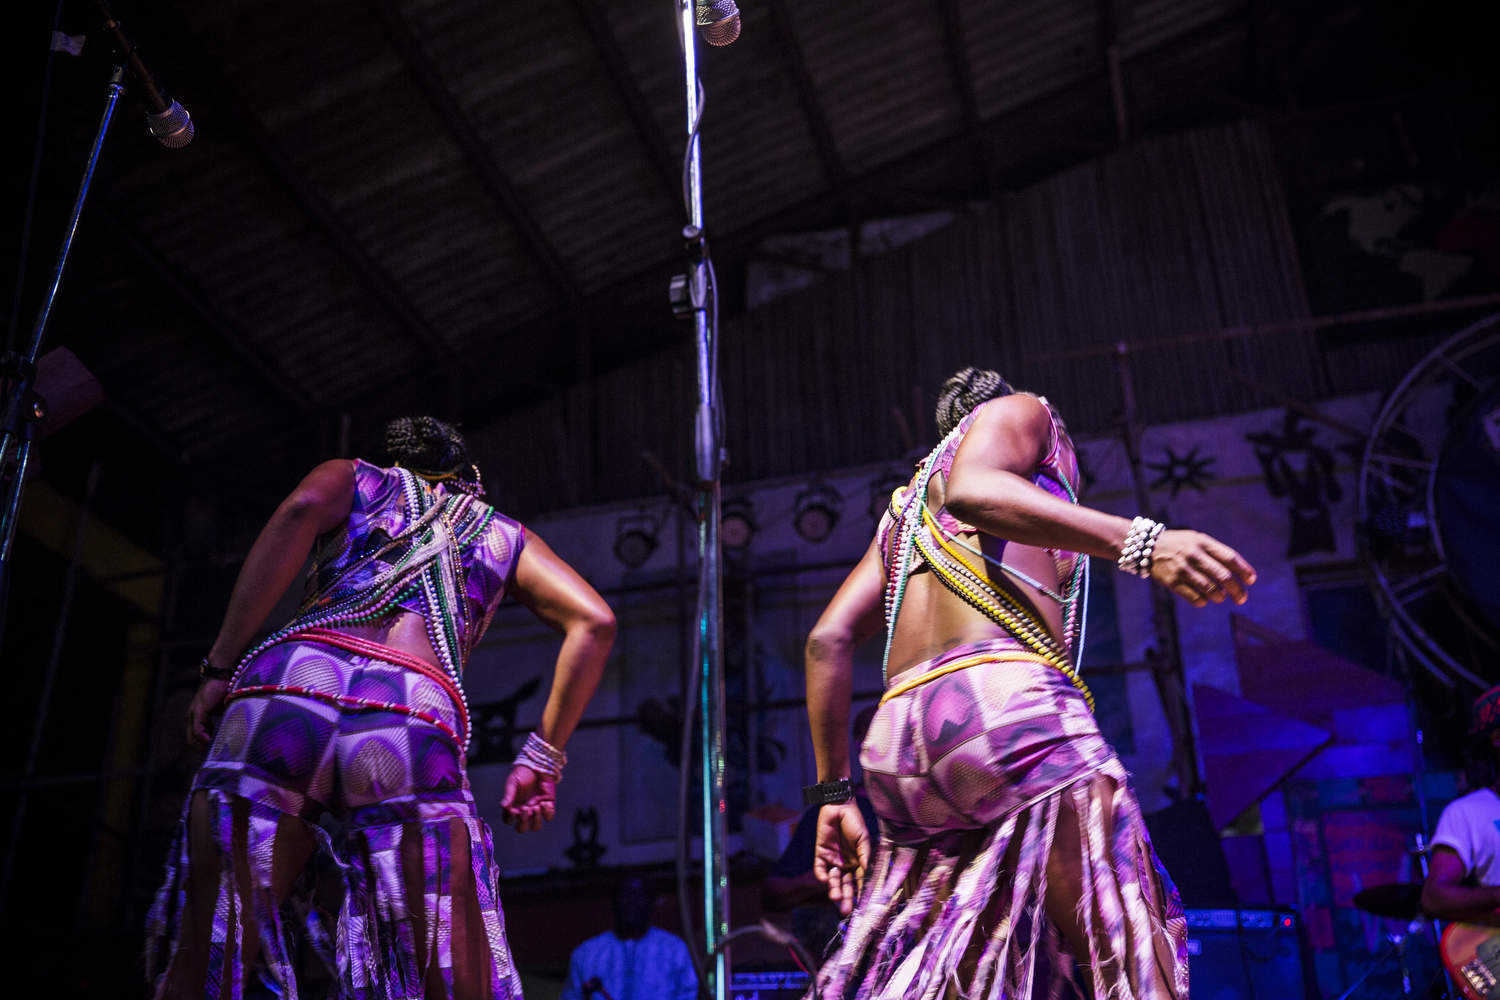 Dancers onstage at the Shrine, Fela Kuti's old diggs reimagined in a new building.